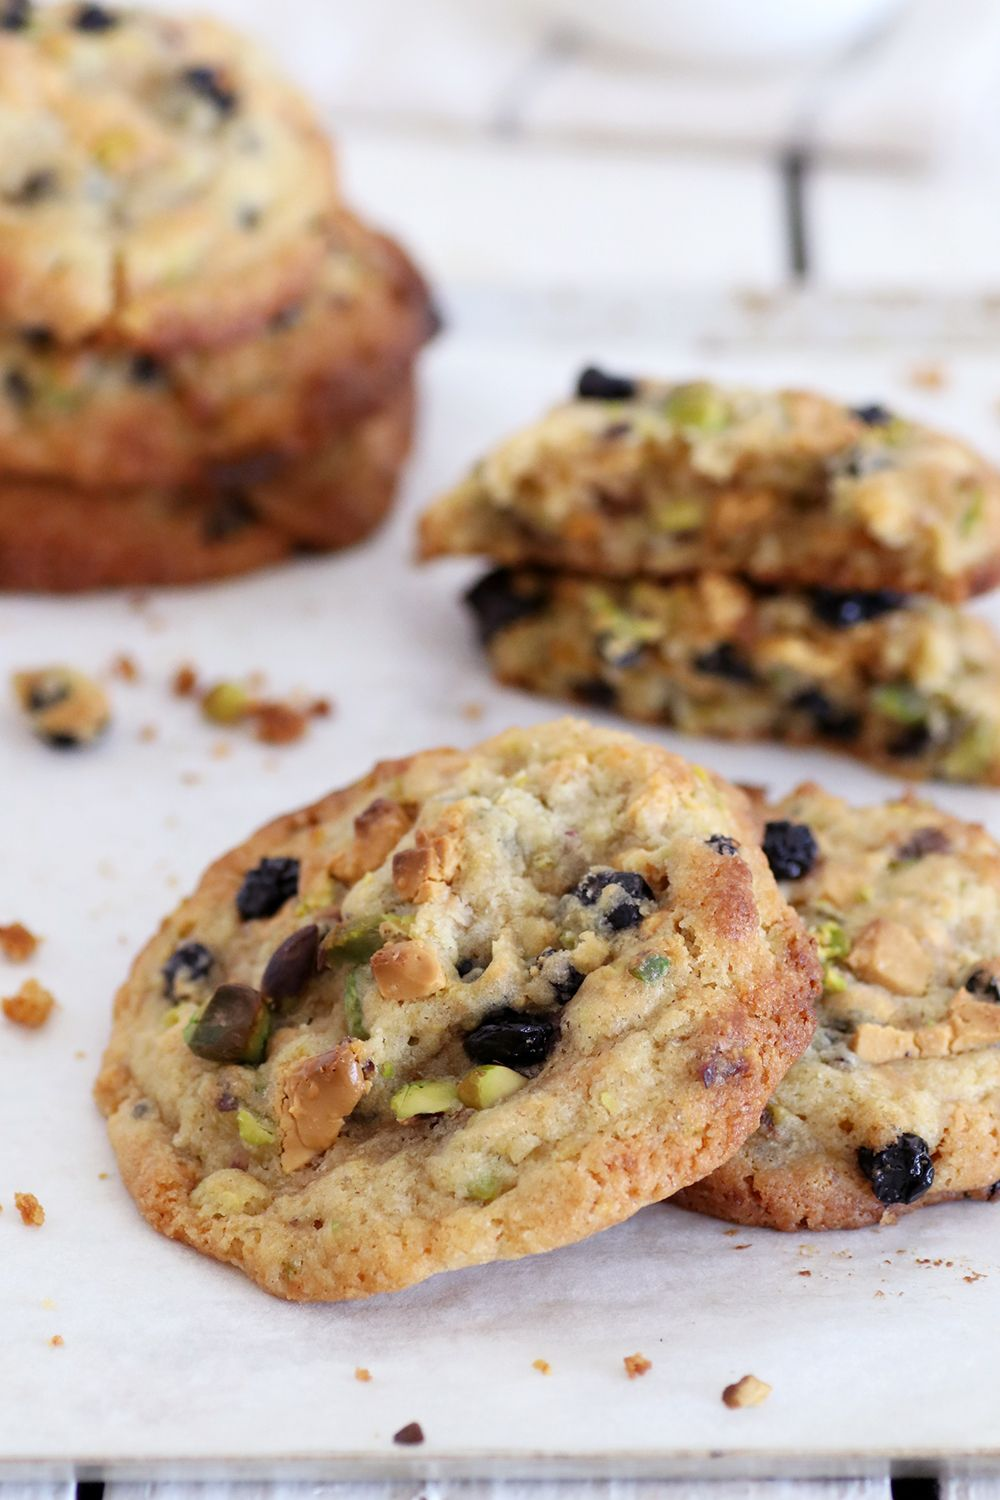 Caramelized White Chocolate Cookies with Pistachios and Blueberries